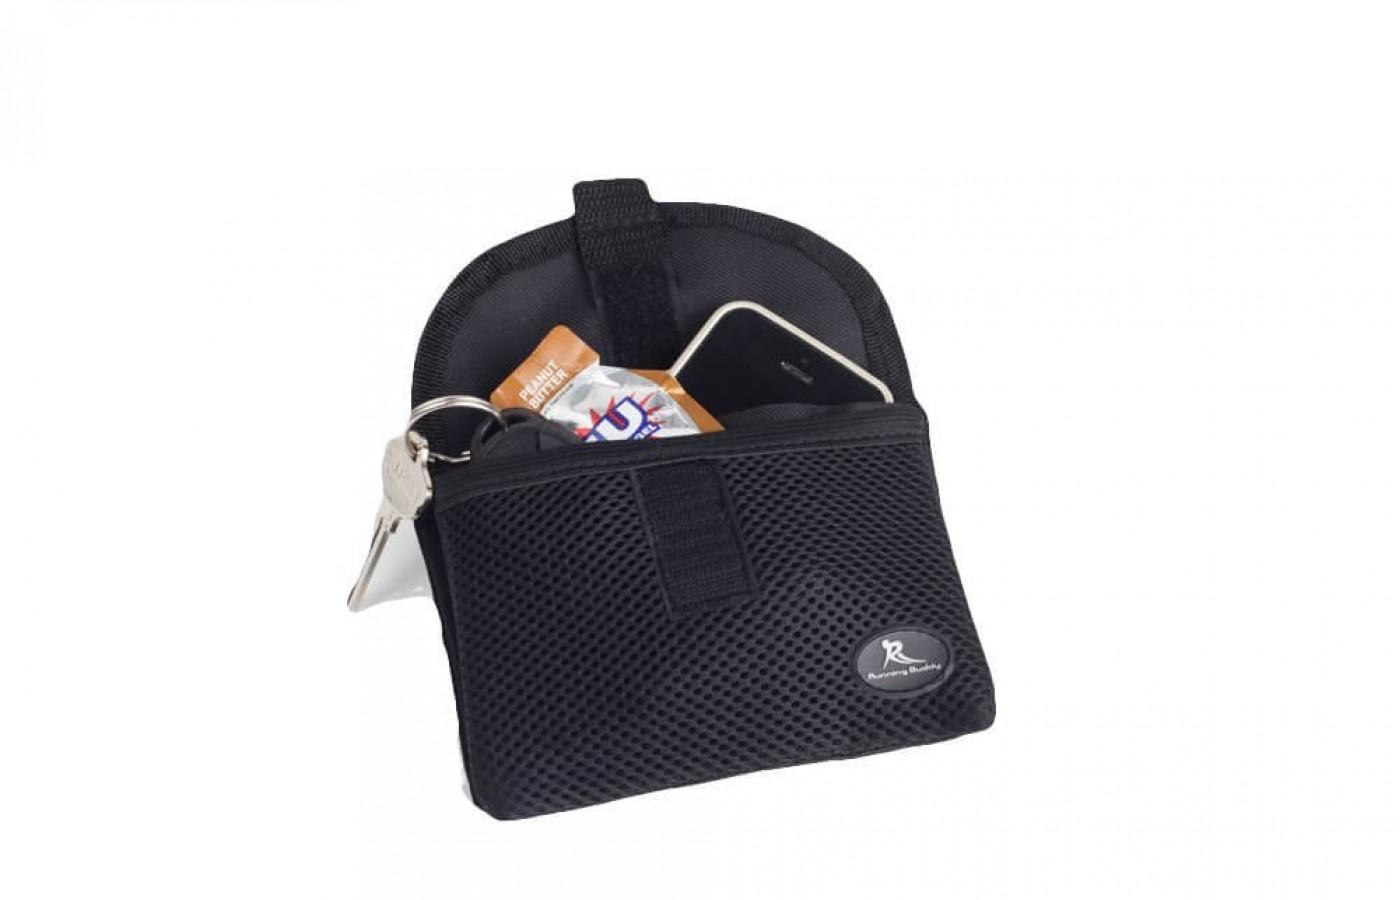 the original buddy pouch can hold gel, keys, most phones and more